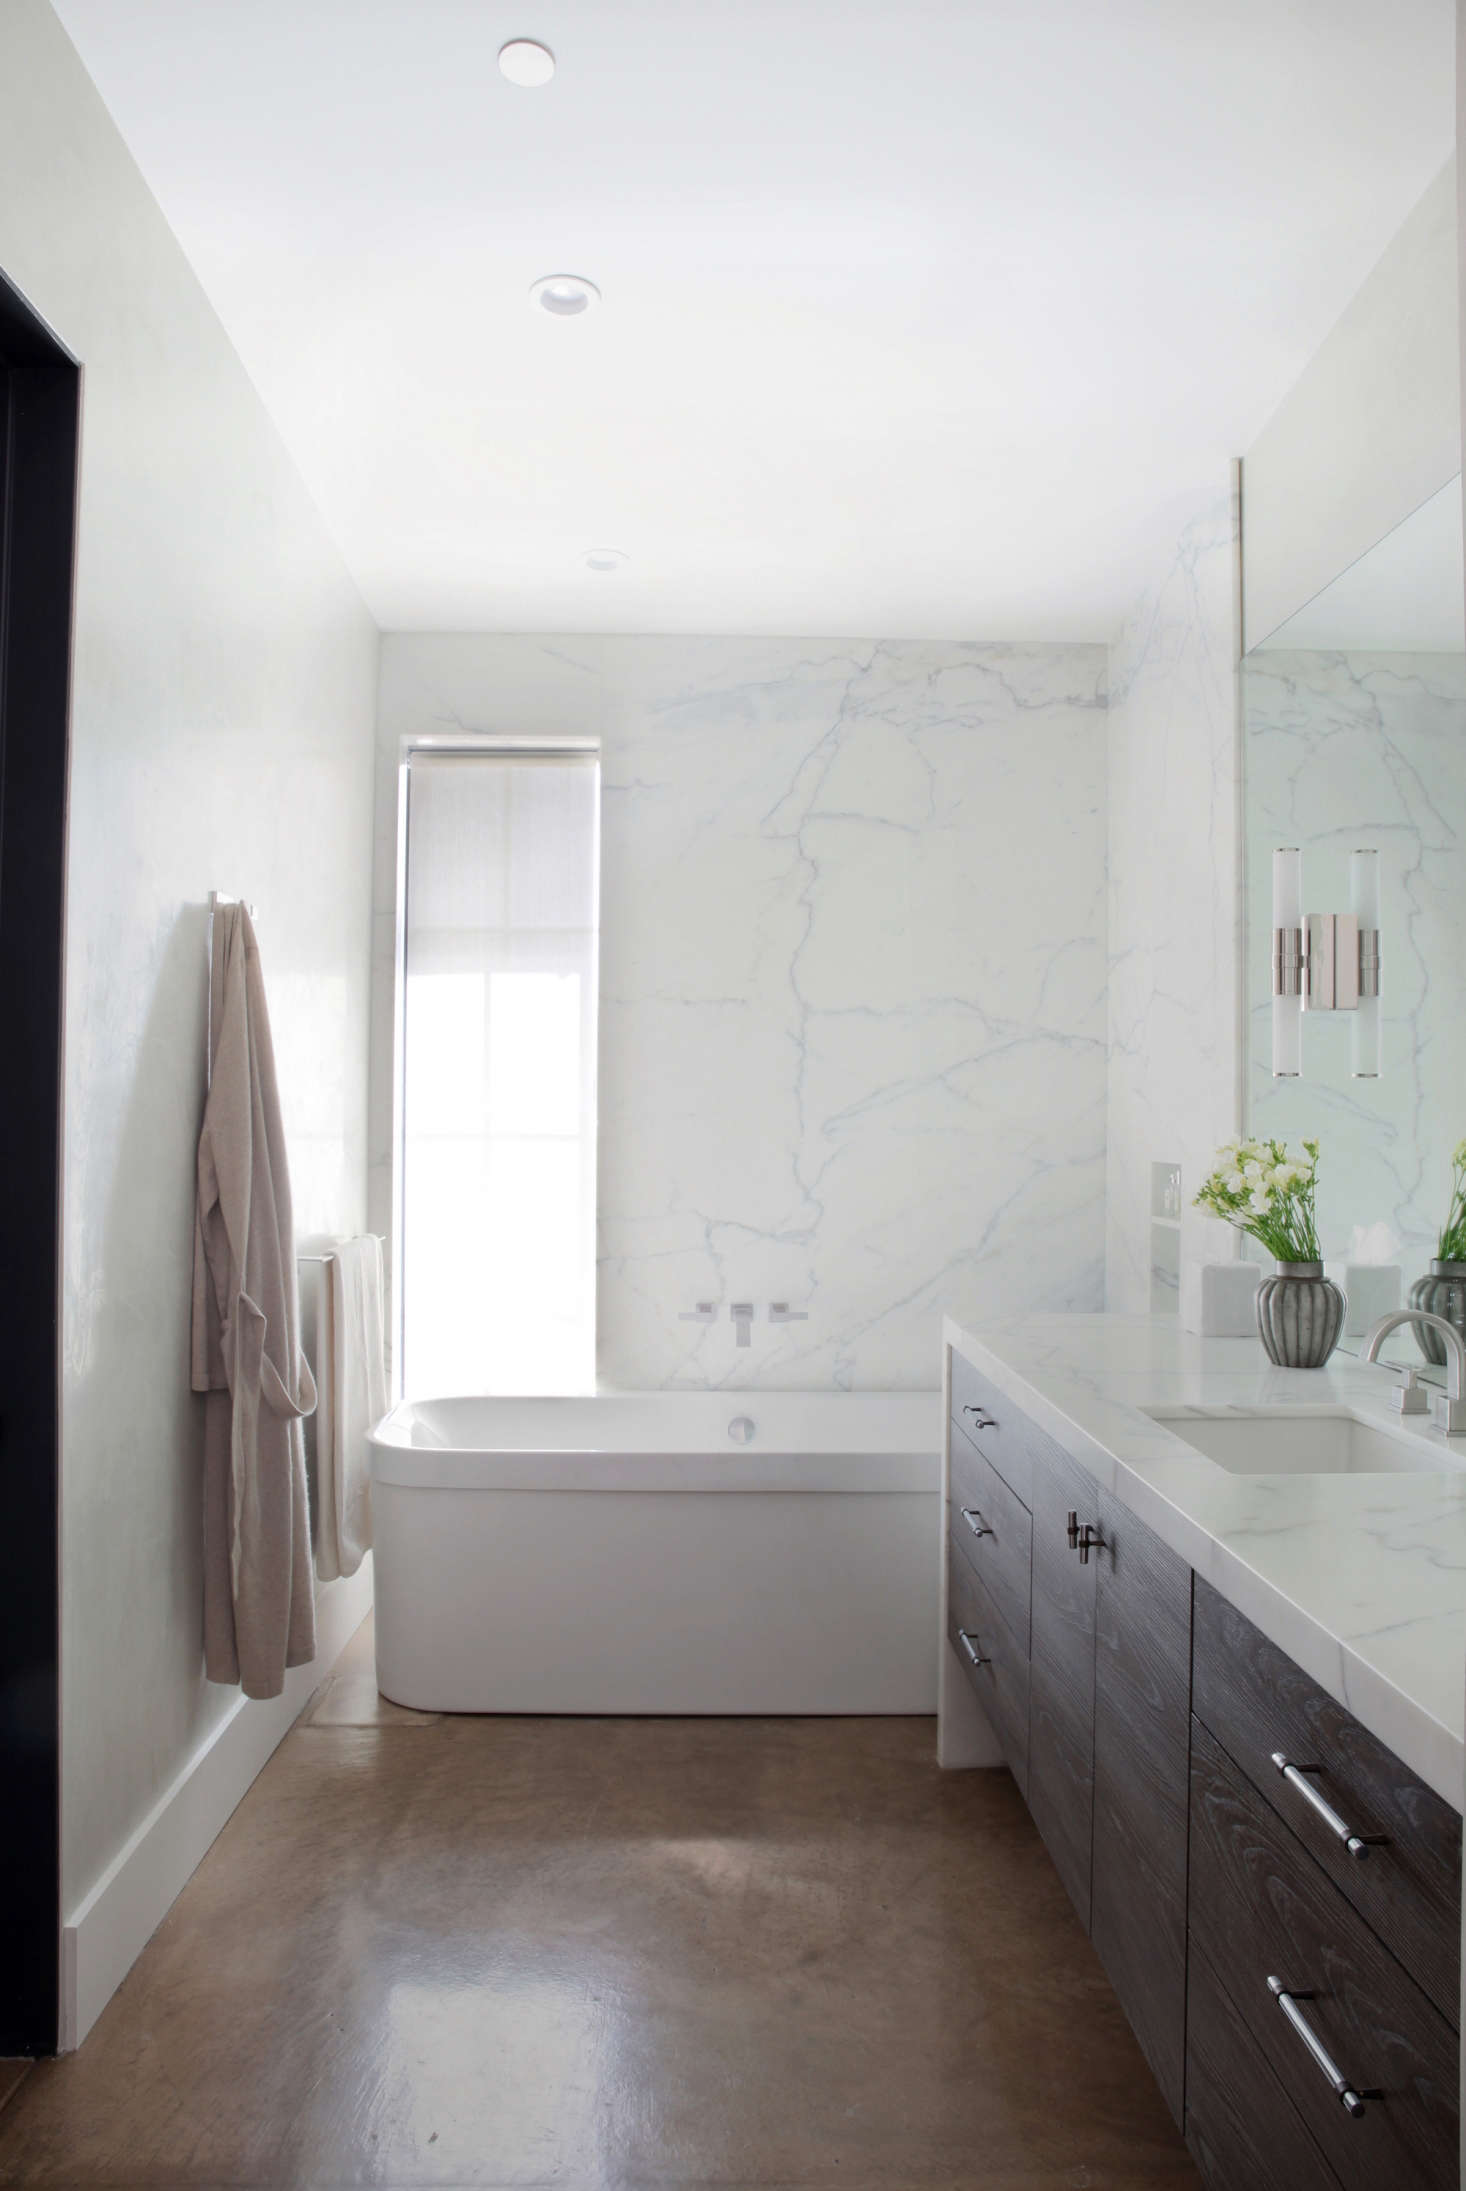 The walls in the master bathroom are waxed Venetian plaster by Willem Racké Studio in San Francisco. The countertop and shower surround is Calacatta Oro.